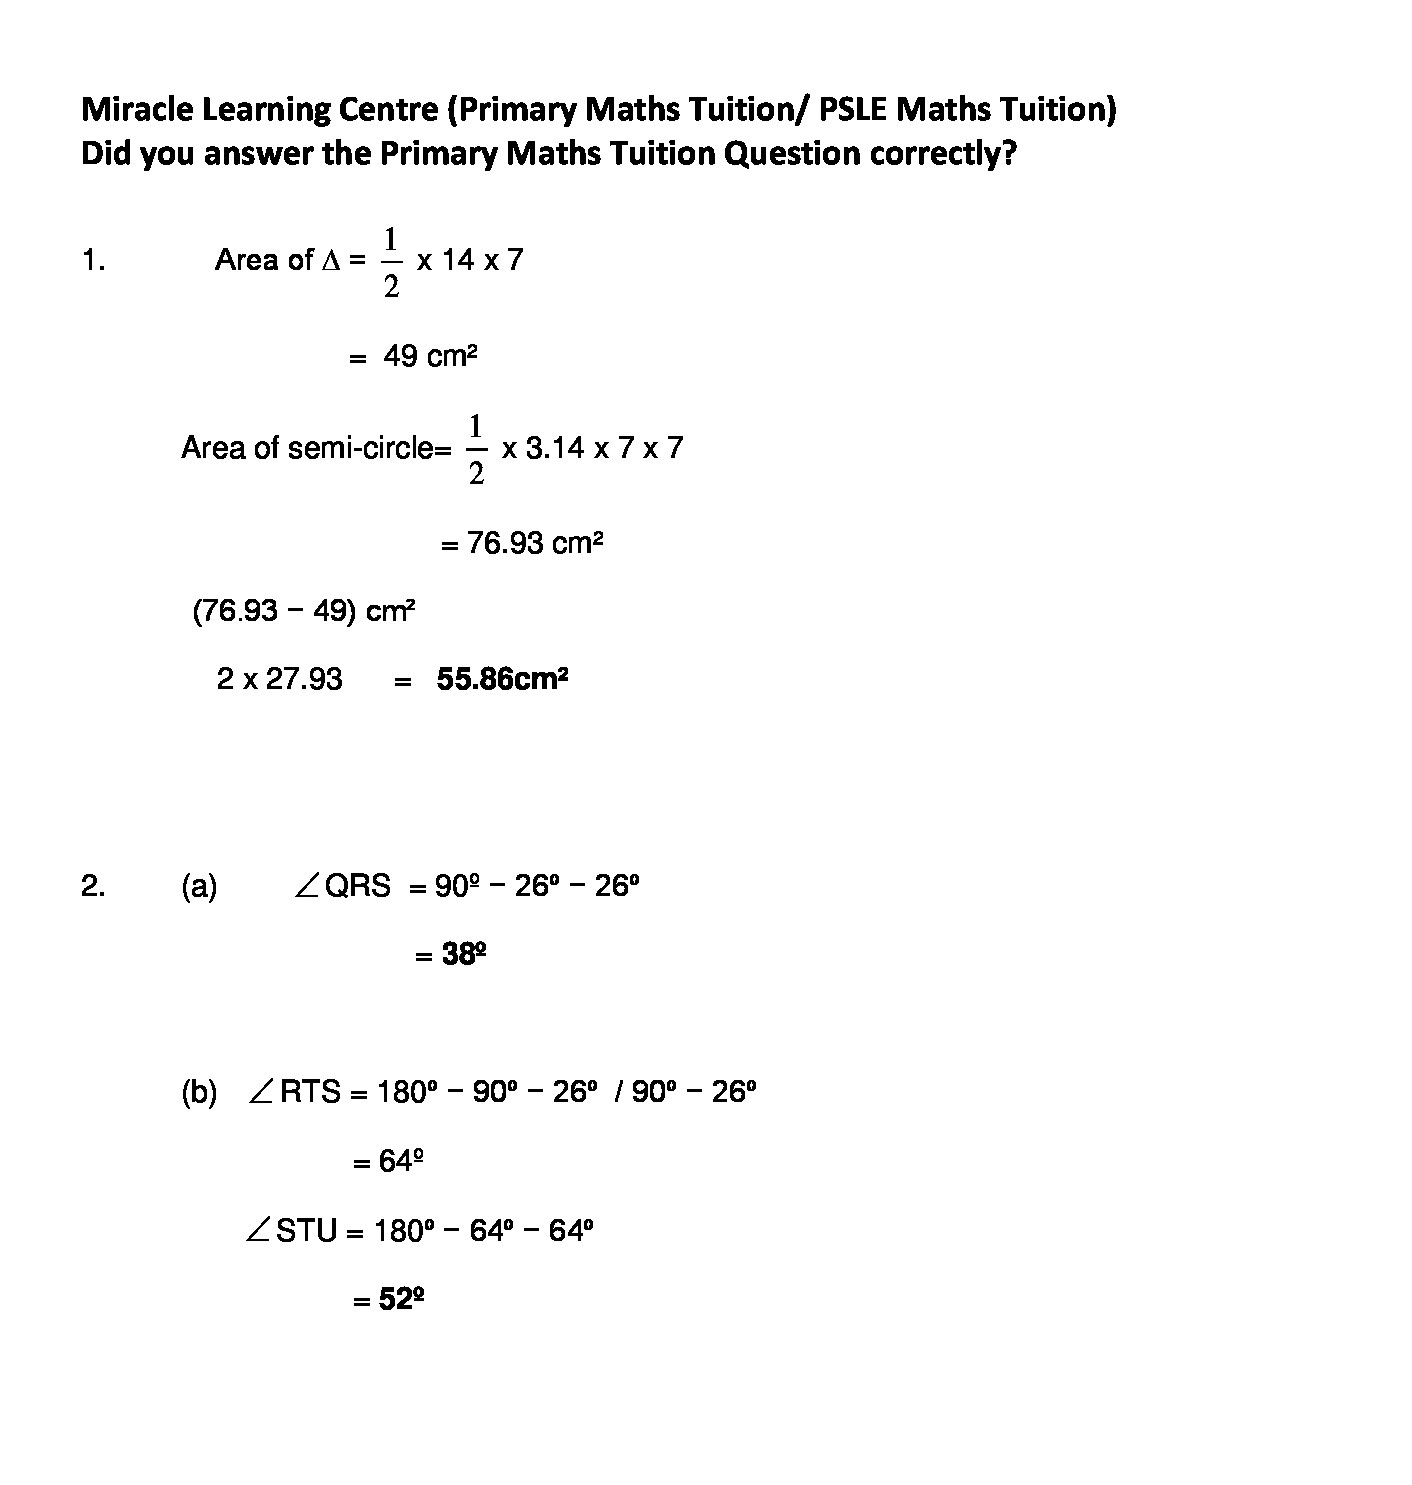 Pri-Maths-Tuition-Q-Article-6-2